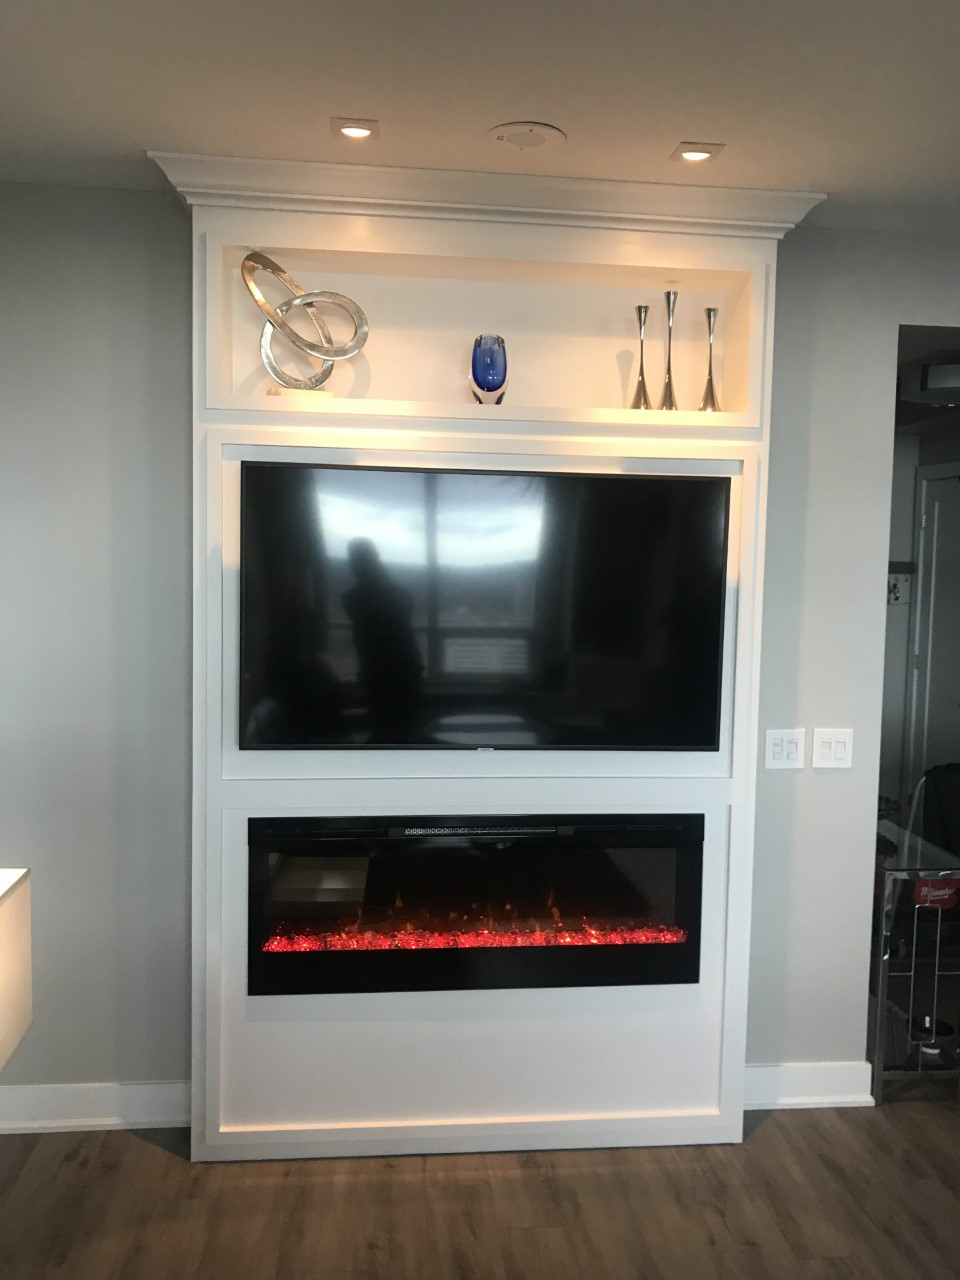 Custom built fireplace and tv mantel with recessed shelf.